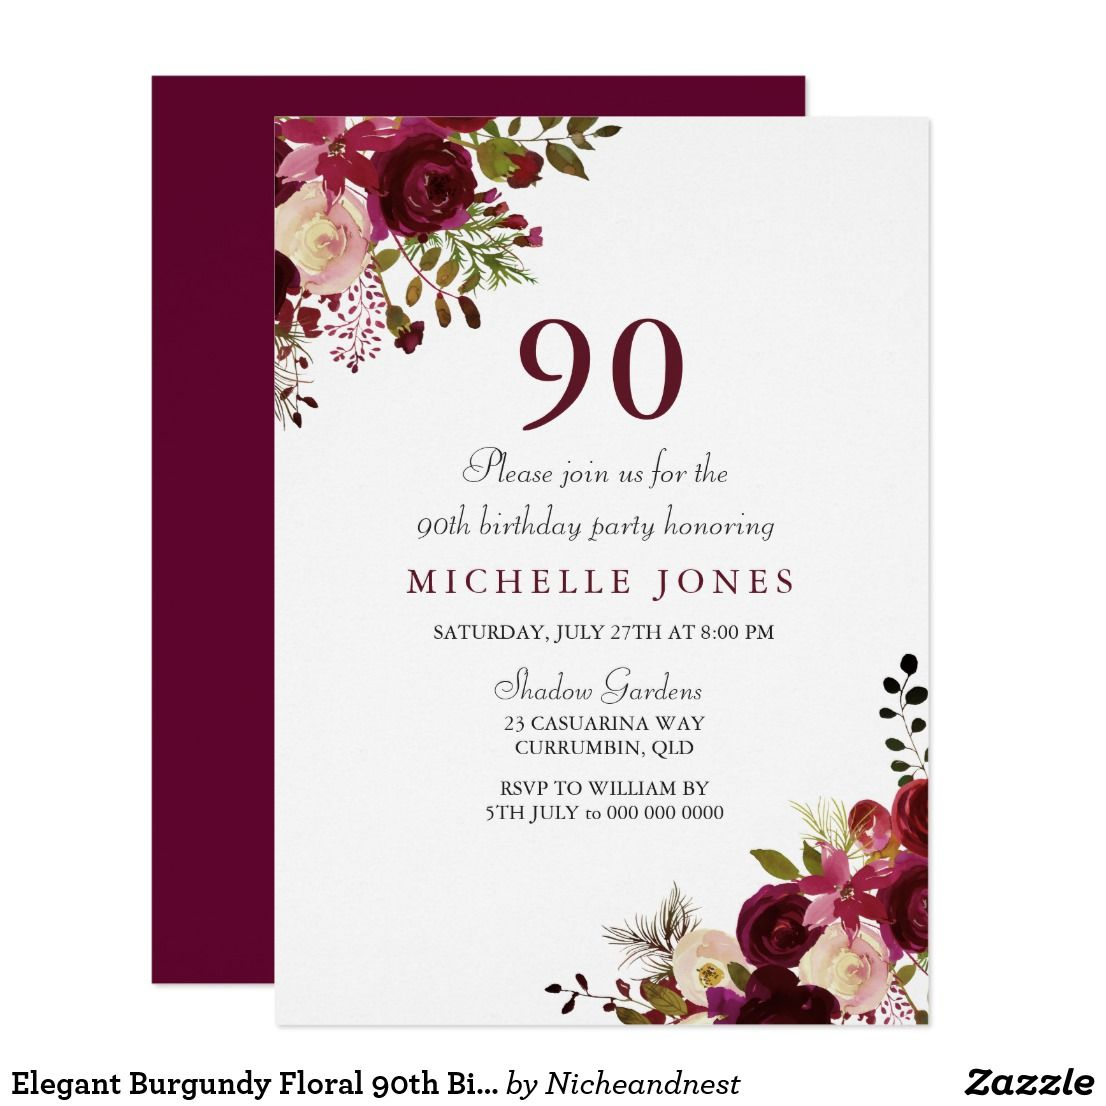 Elegant Burgundy Floral 90th Birthday Invitation Matching Collection In Niche And Nest Store